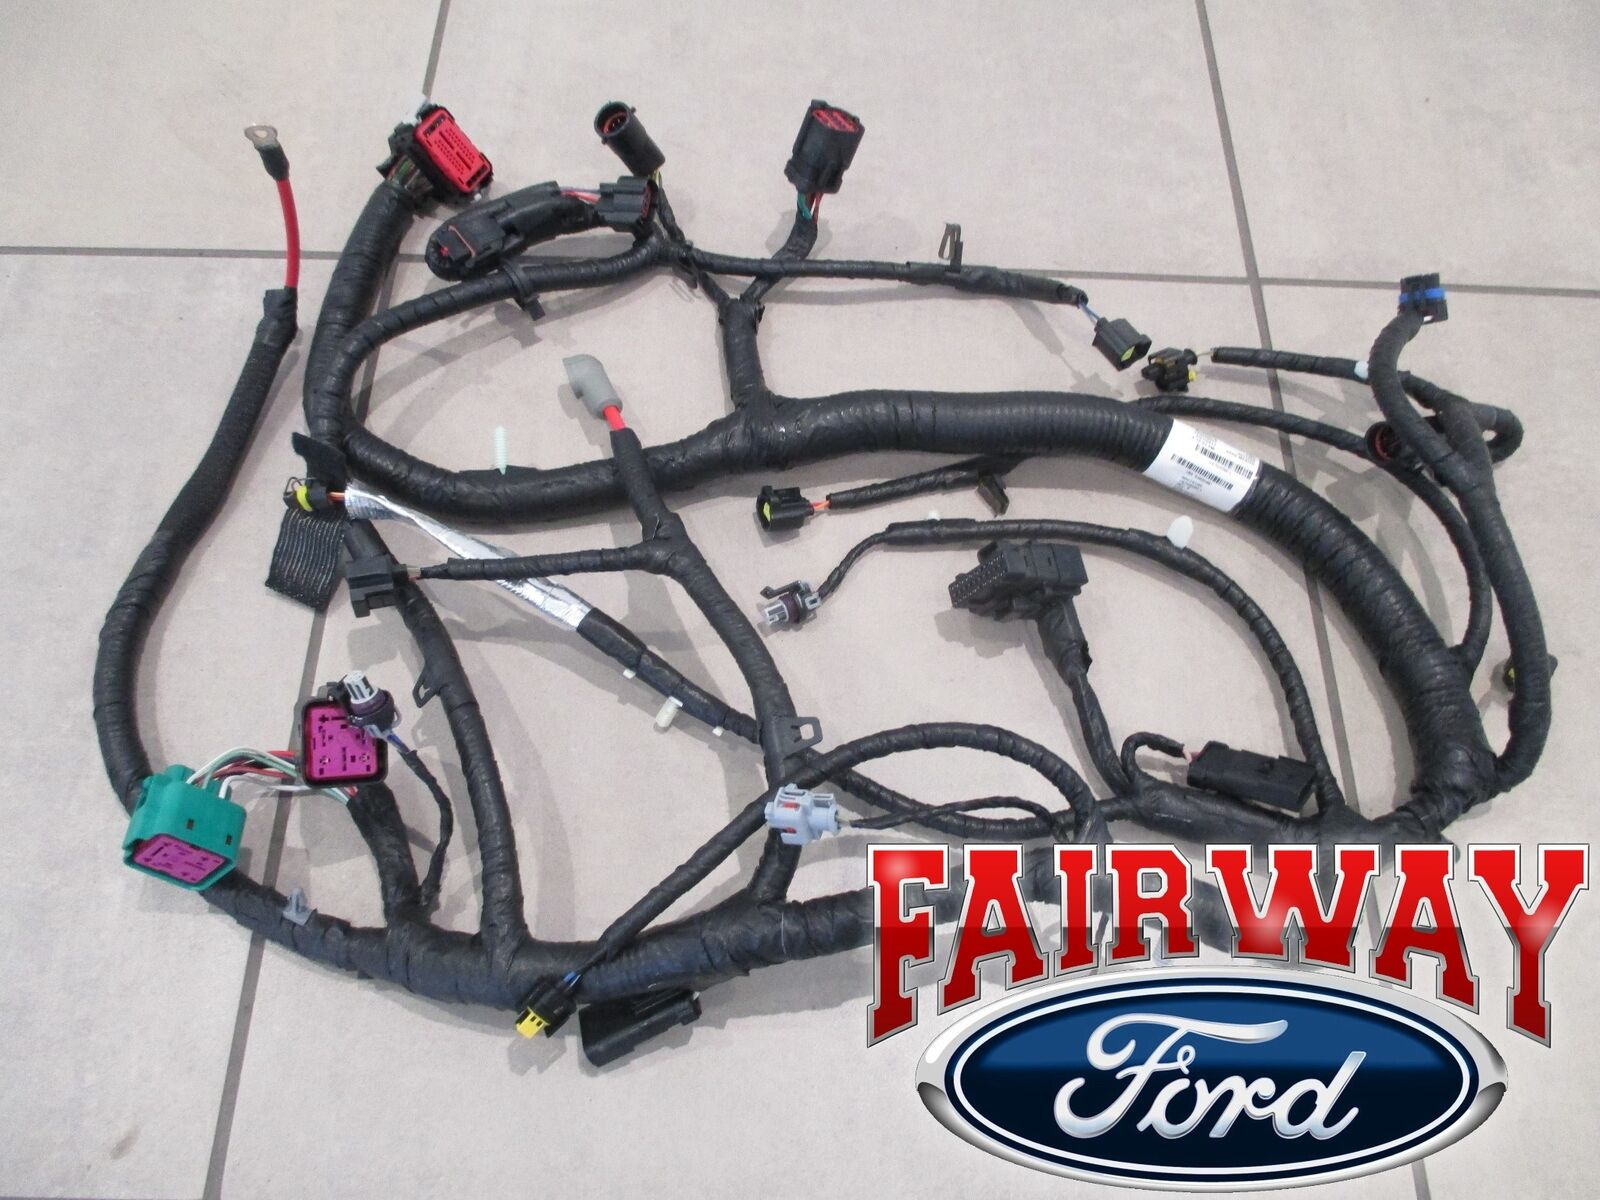 05 07 Super Duty Oem Ford Engine Wiring Harness 60l 11 4 2004 And 2015 Kia Sorento 1 Of 8only Available See More